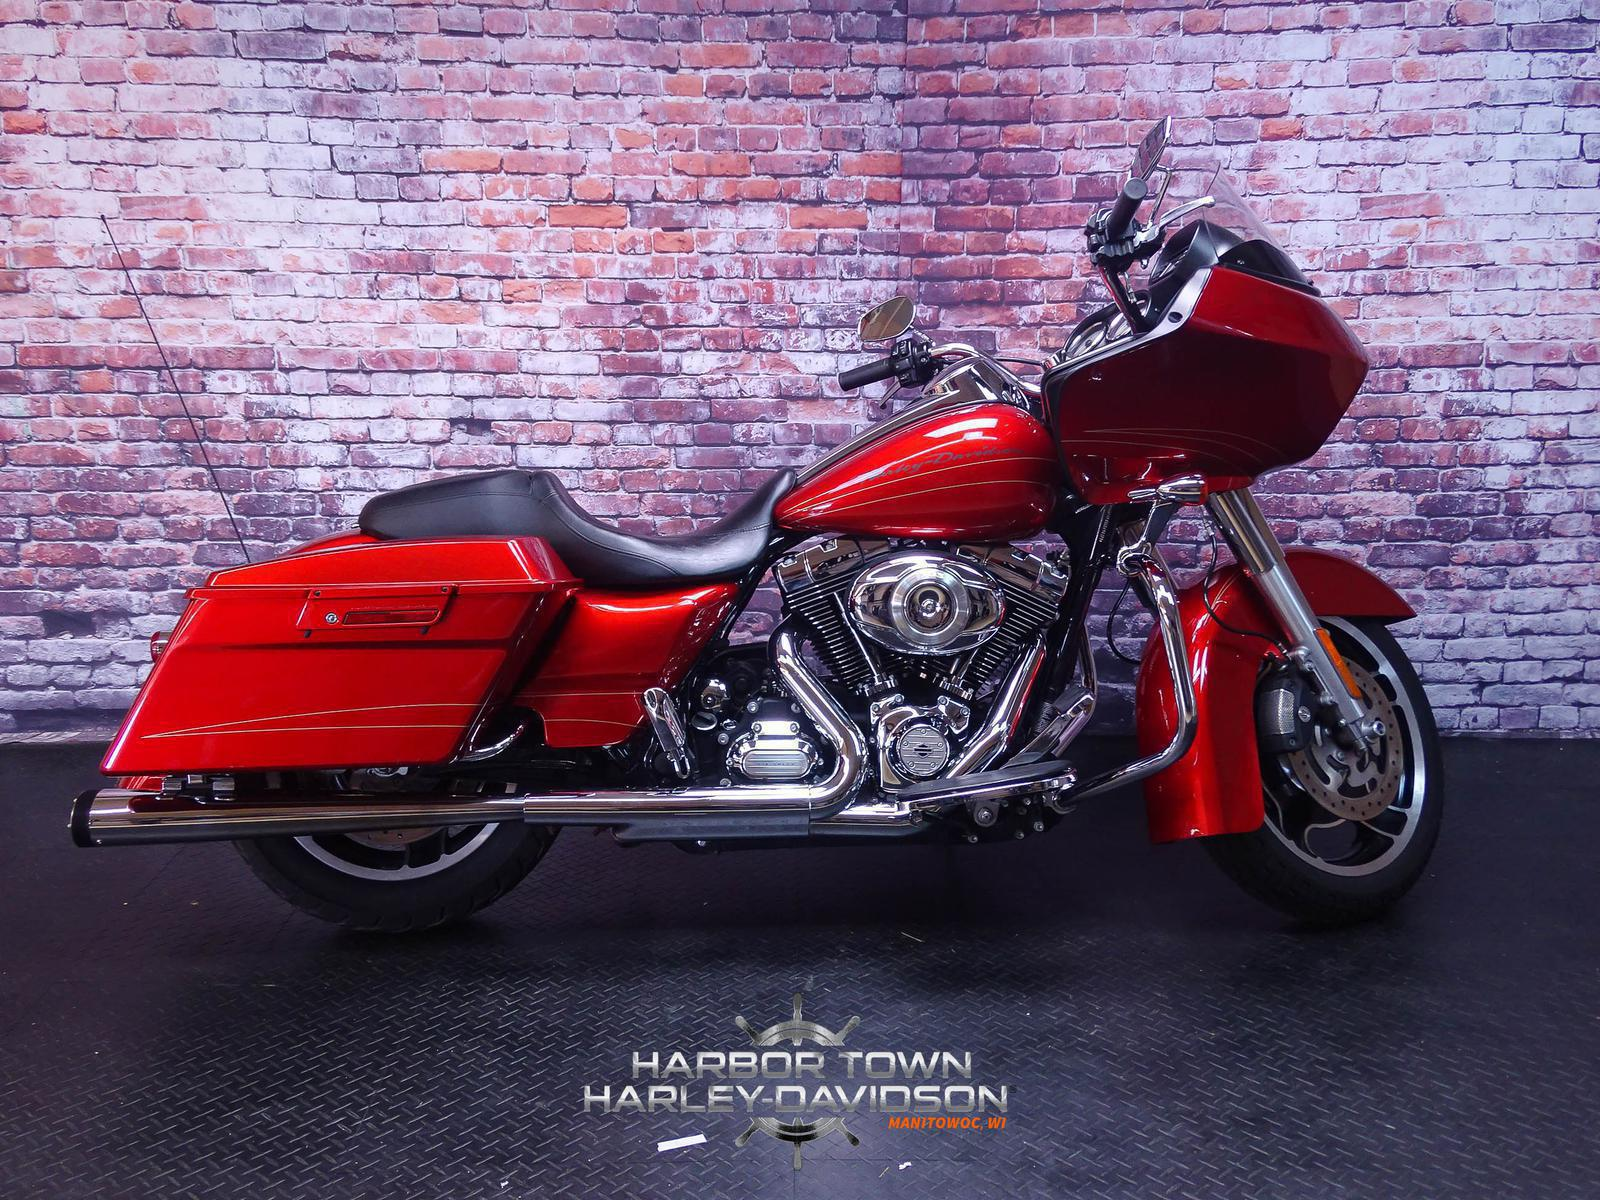 DSC04545 2013 harley davidson� road glide custom for sale in manitowoc, wi  at crackthecode.co